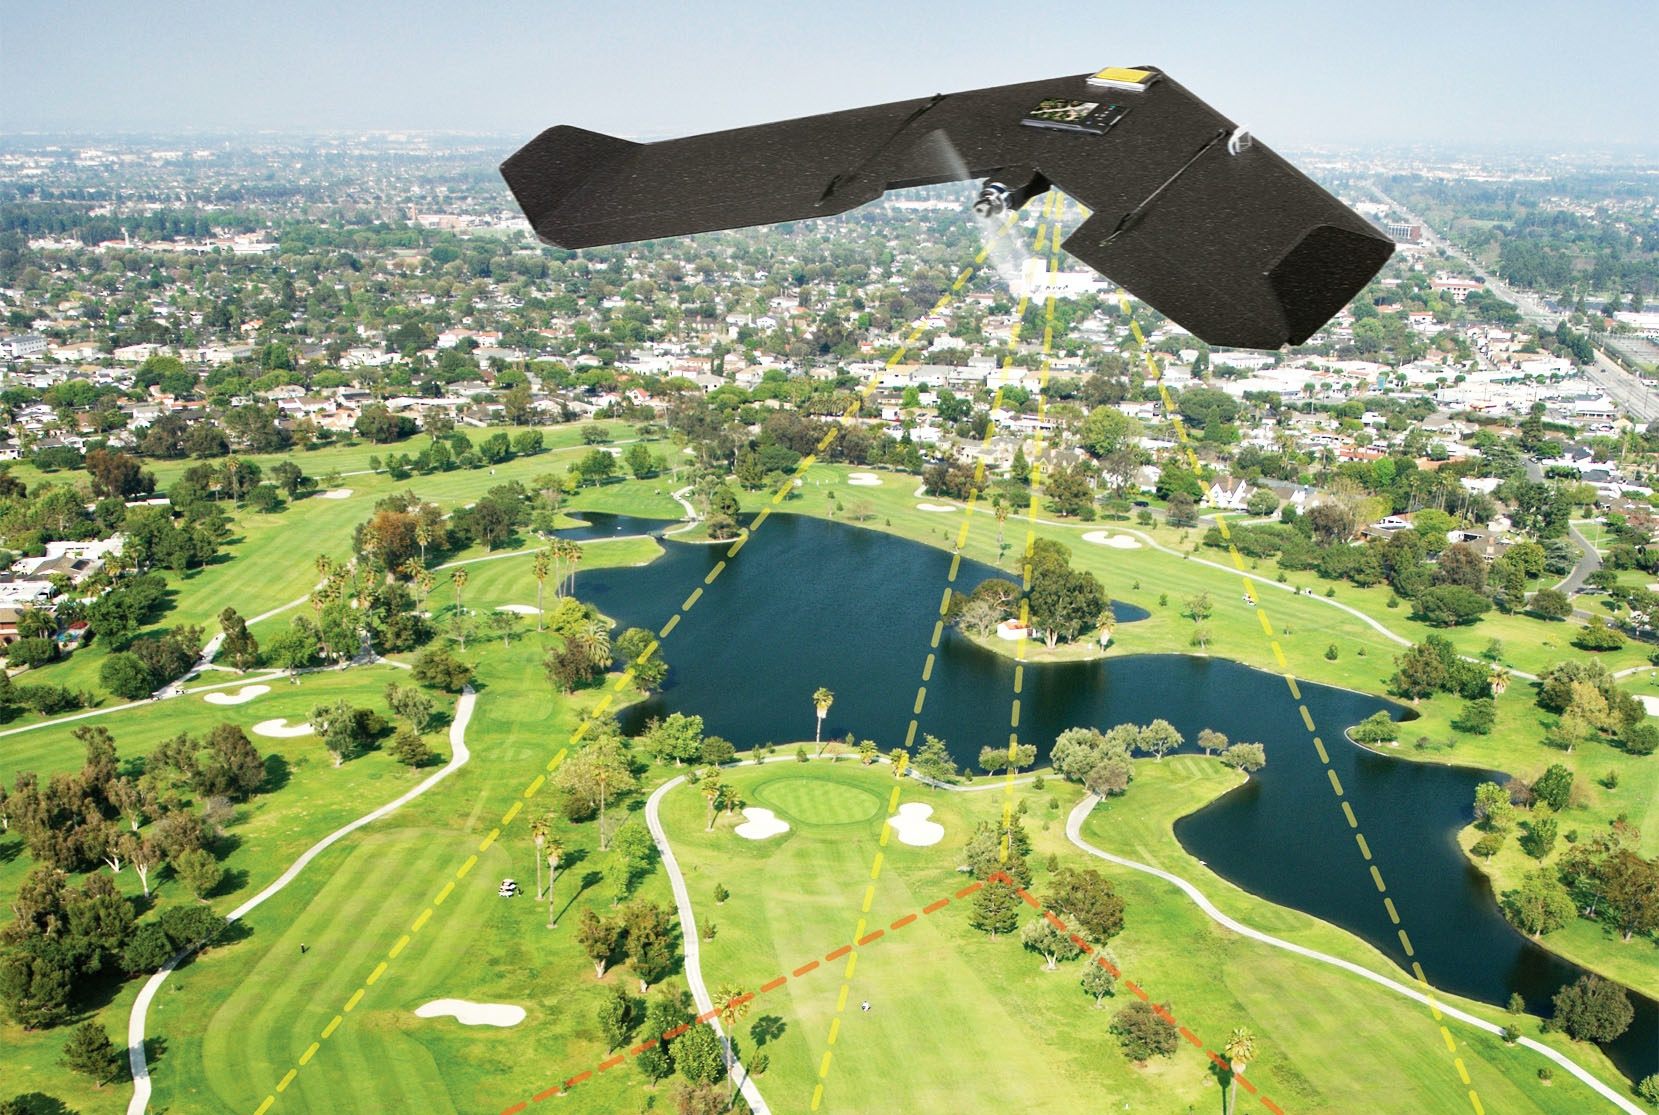 UK Aerial Survey Company Launches Unmanned Aerial Vehicle Service ...